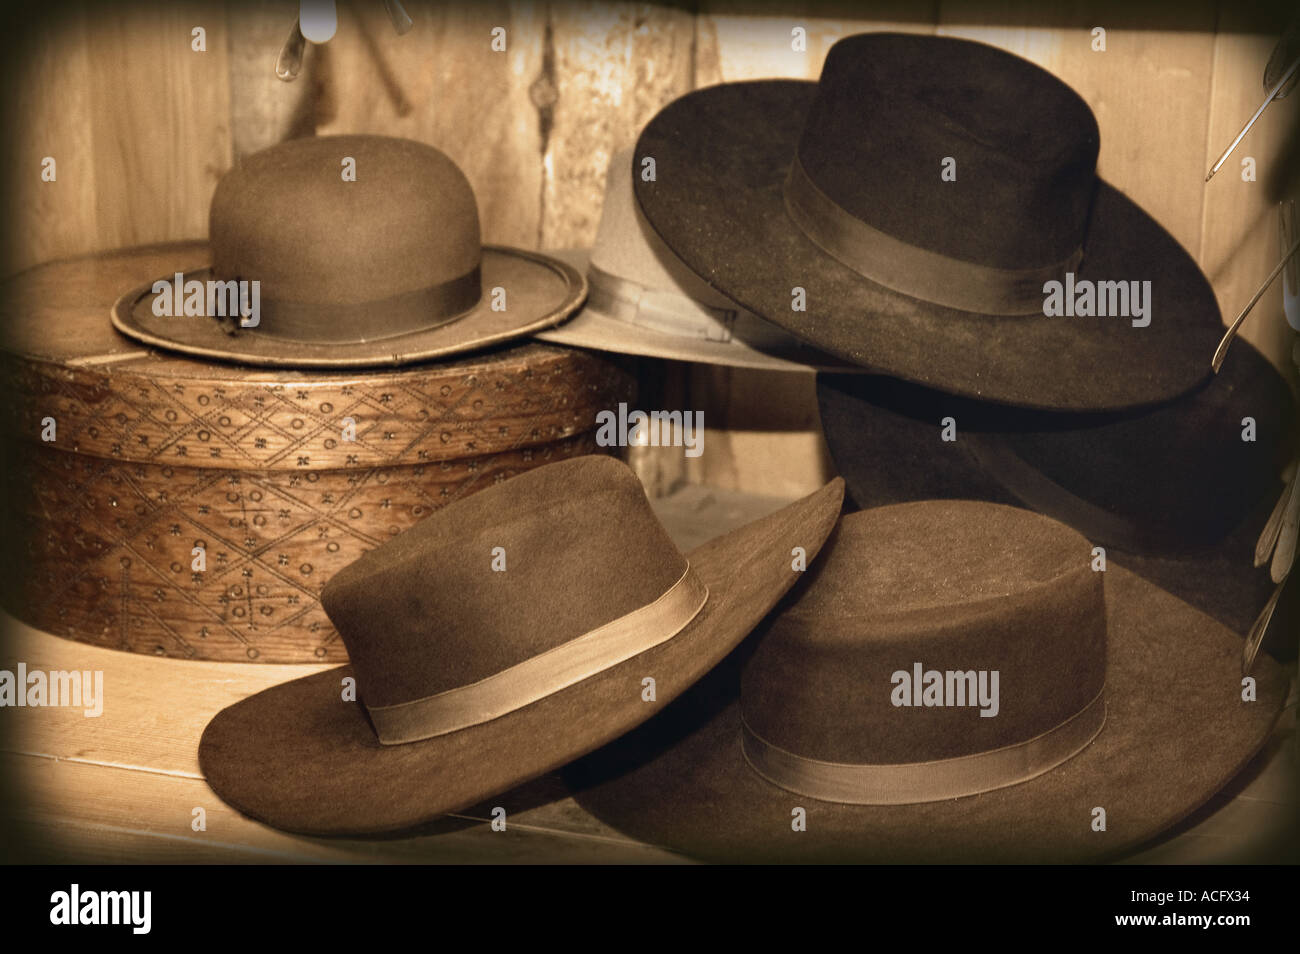 Selection of old fashioned hats in sepia tones - Stock Image